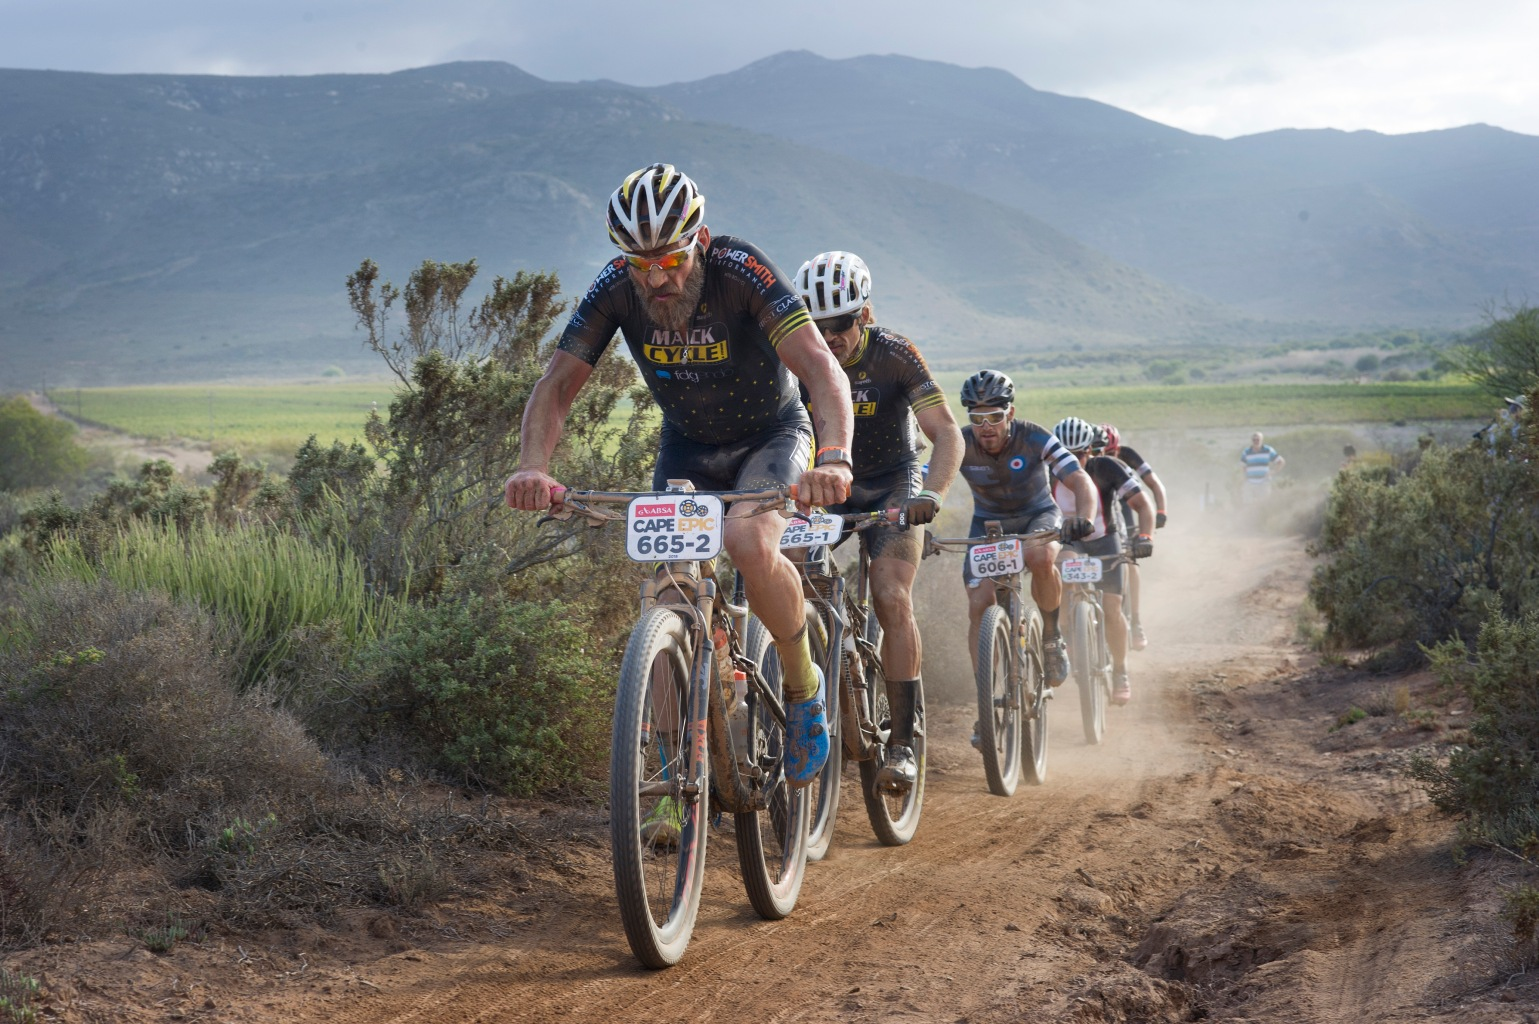 TOPSHOT - Participants ride during the first full stage of the 2018 Cape Epic African Mountain Bike Race on March 19, 2018, in the mountainous region close to the town of Robertson, about 150 Km from  Cape Town.  The Epic, which is regarded as one of the world's foremost mountain bike races, covers a distance of 685Km, and climbs 13530m, over 8 stages, through the mountains of the Western Cape Province. The riders ride in teams of two, and have to finish close together / AFP PHOTO / RODGER BOSCH        (Photo credit should read RODGER BOSCH/AFP/Getty Images)